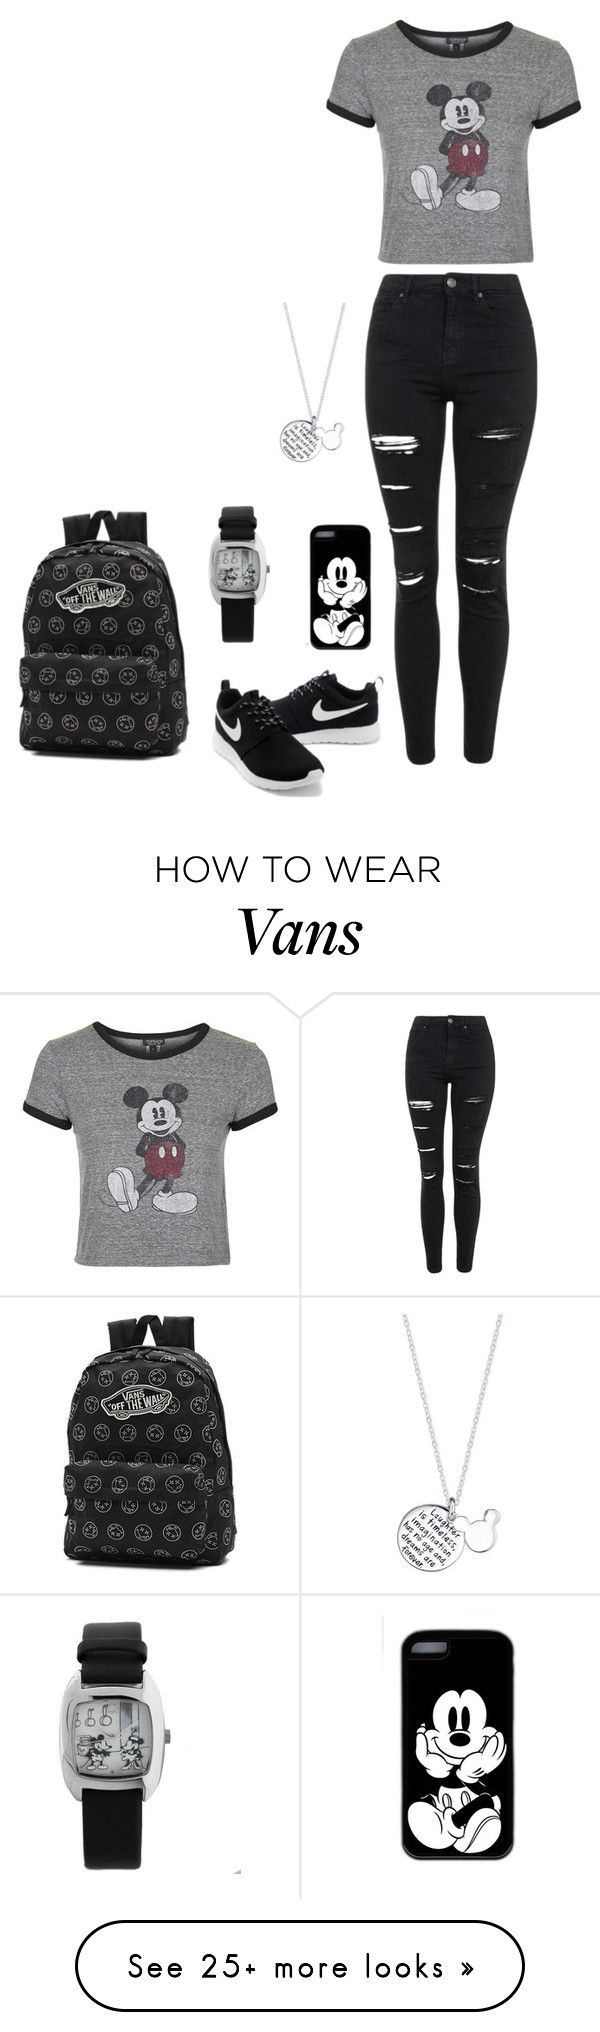 """Untitled #239"" by kasia206648 on Polyvore featuring Topshop, Disney, NIKE and Vans"